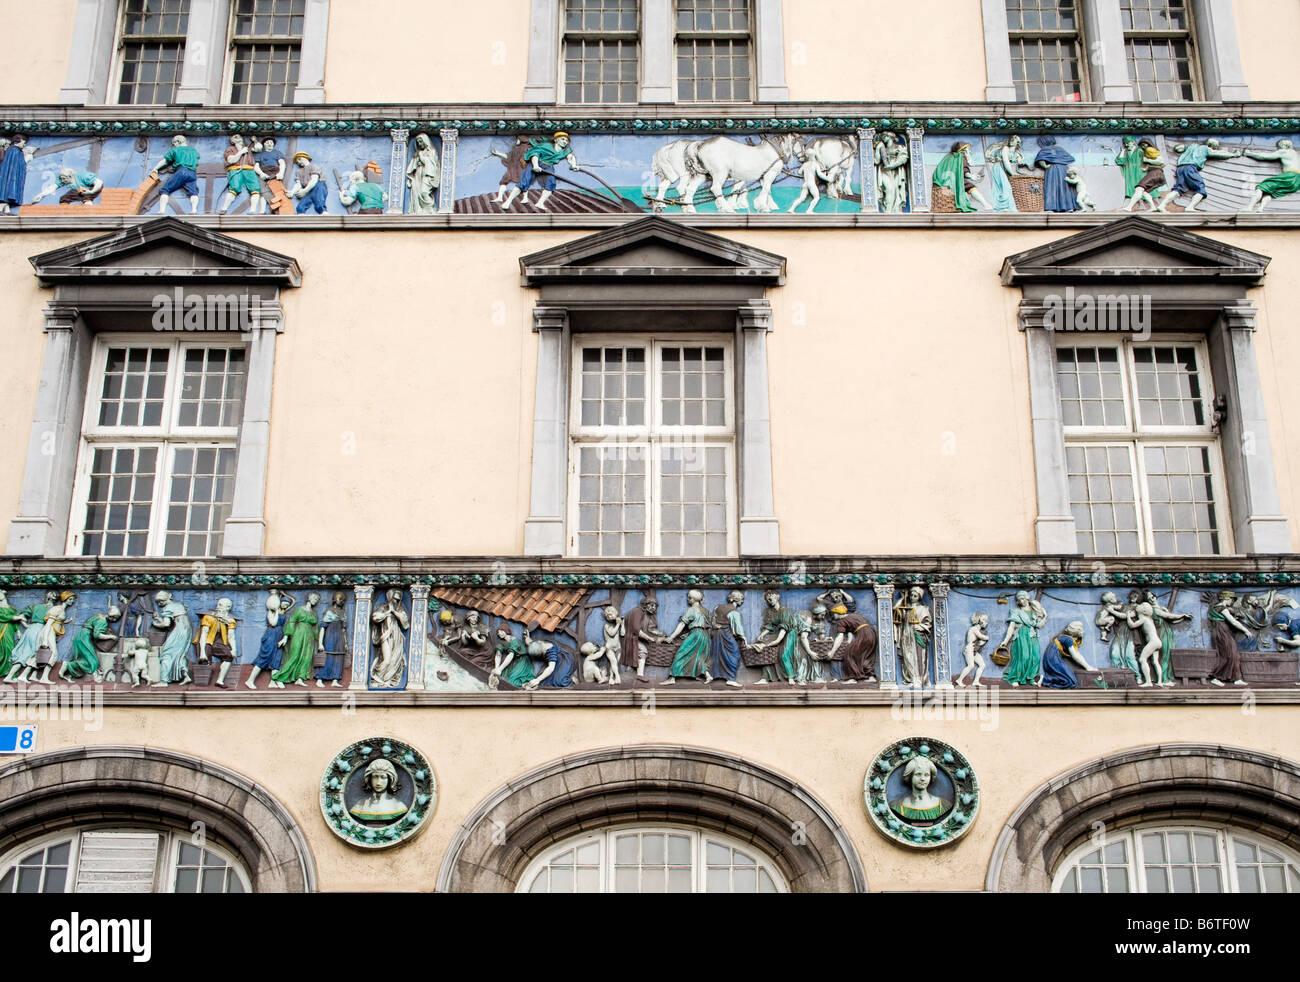 Detail of Sunlight Chambers (1901), Essex Quay, Dublin, Ireland.  The frieze portrays the history of soap manufacture. - Stock Image